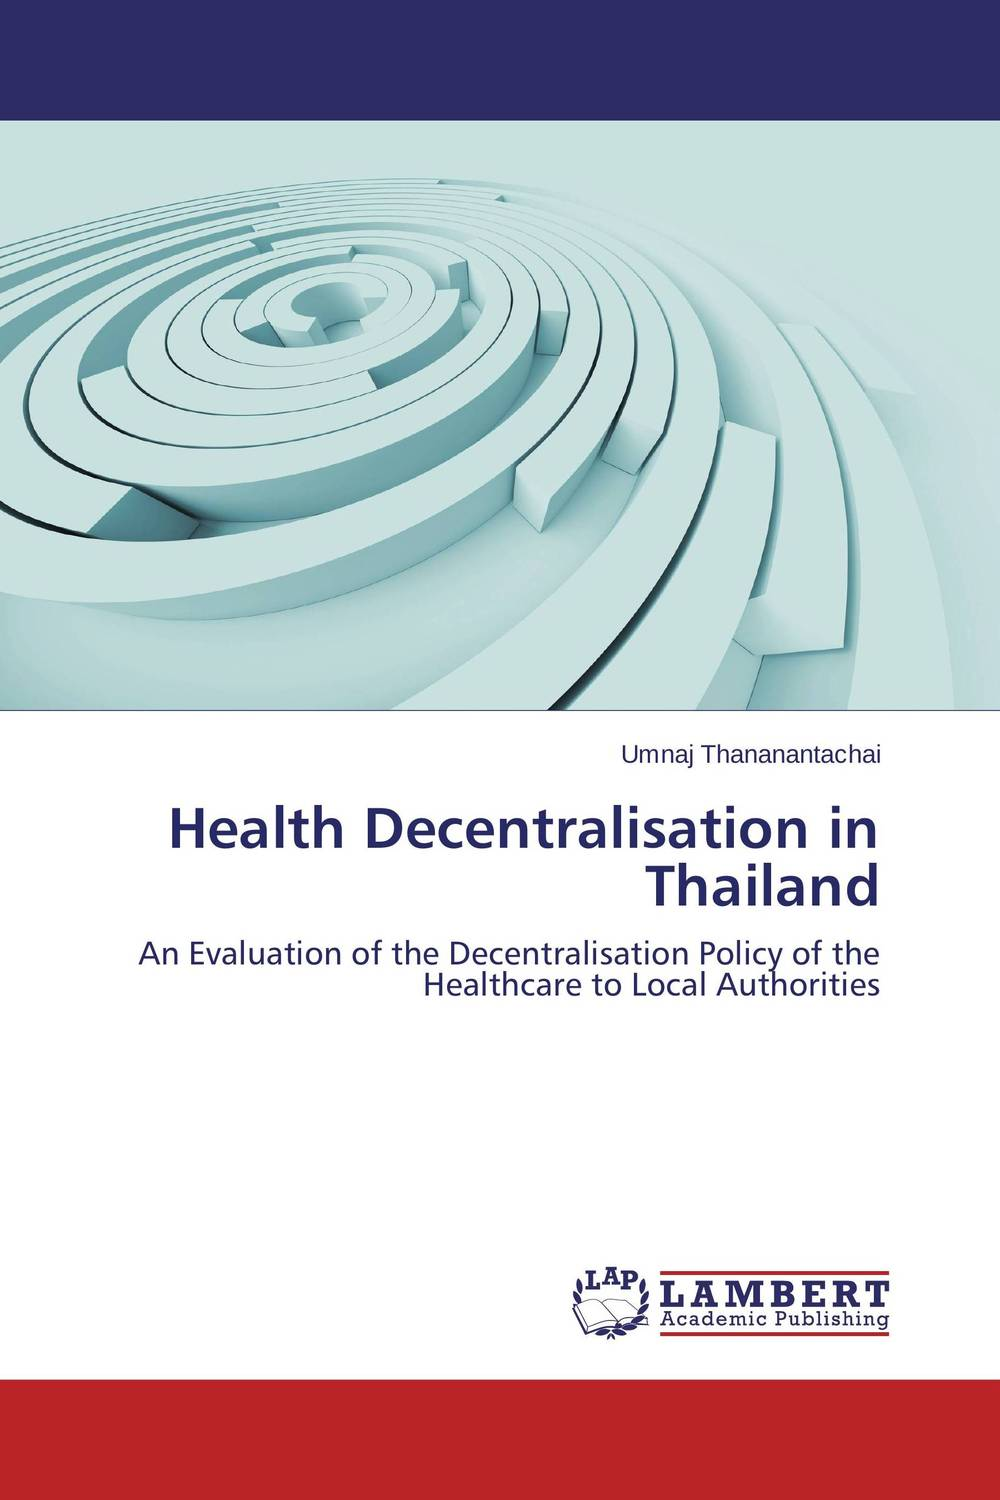 Health Decentralisation in Thailand prostate health devices is prostate removal prostatitis mainly for the prostate health and prostatitis health capsule